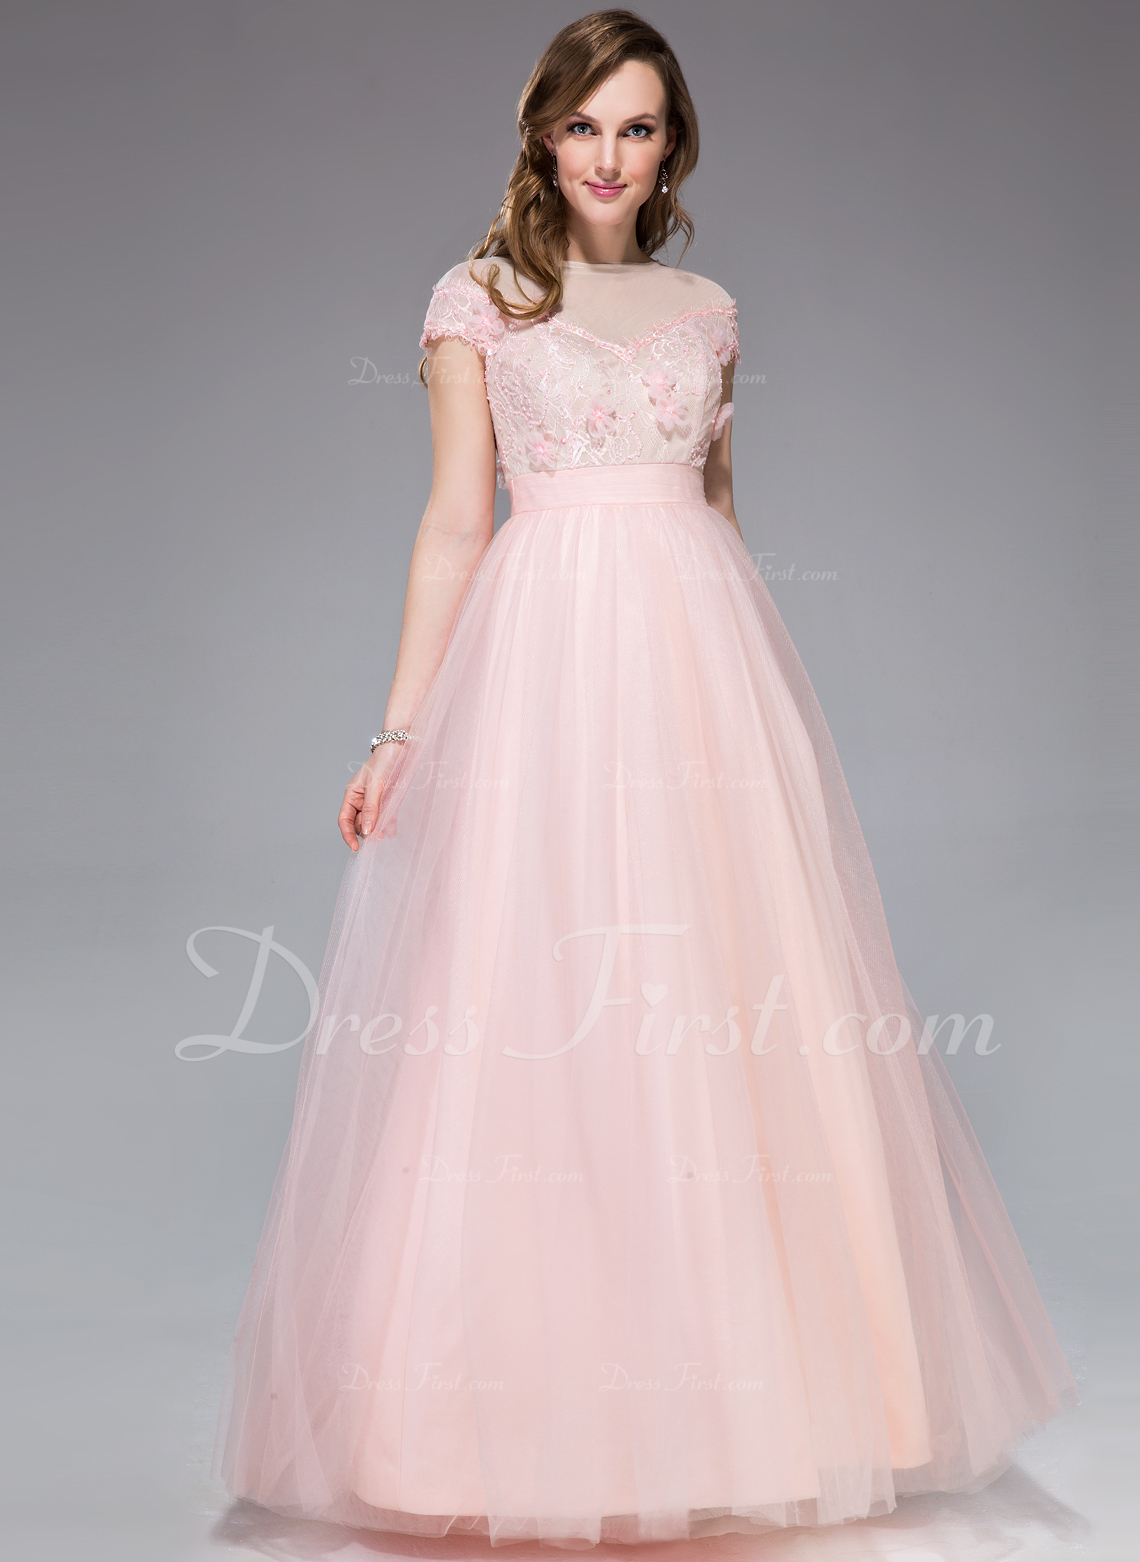 A-Line/Princess Off-the-Shoulder Floor-Length Tulle Lace Prom Dress With Beading Flower(s) Sequins (018044993)